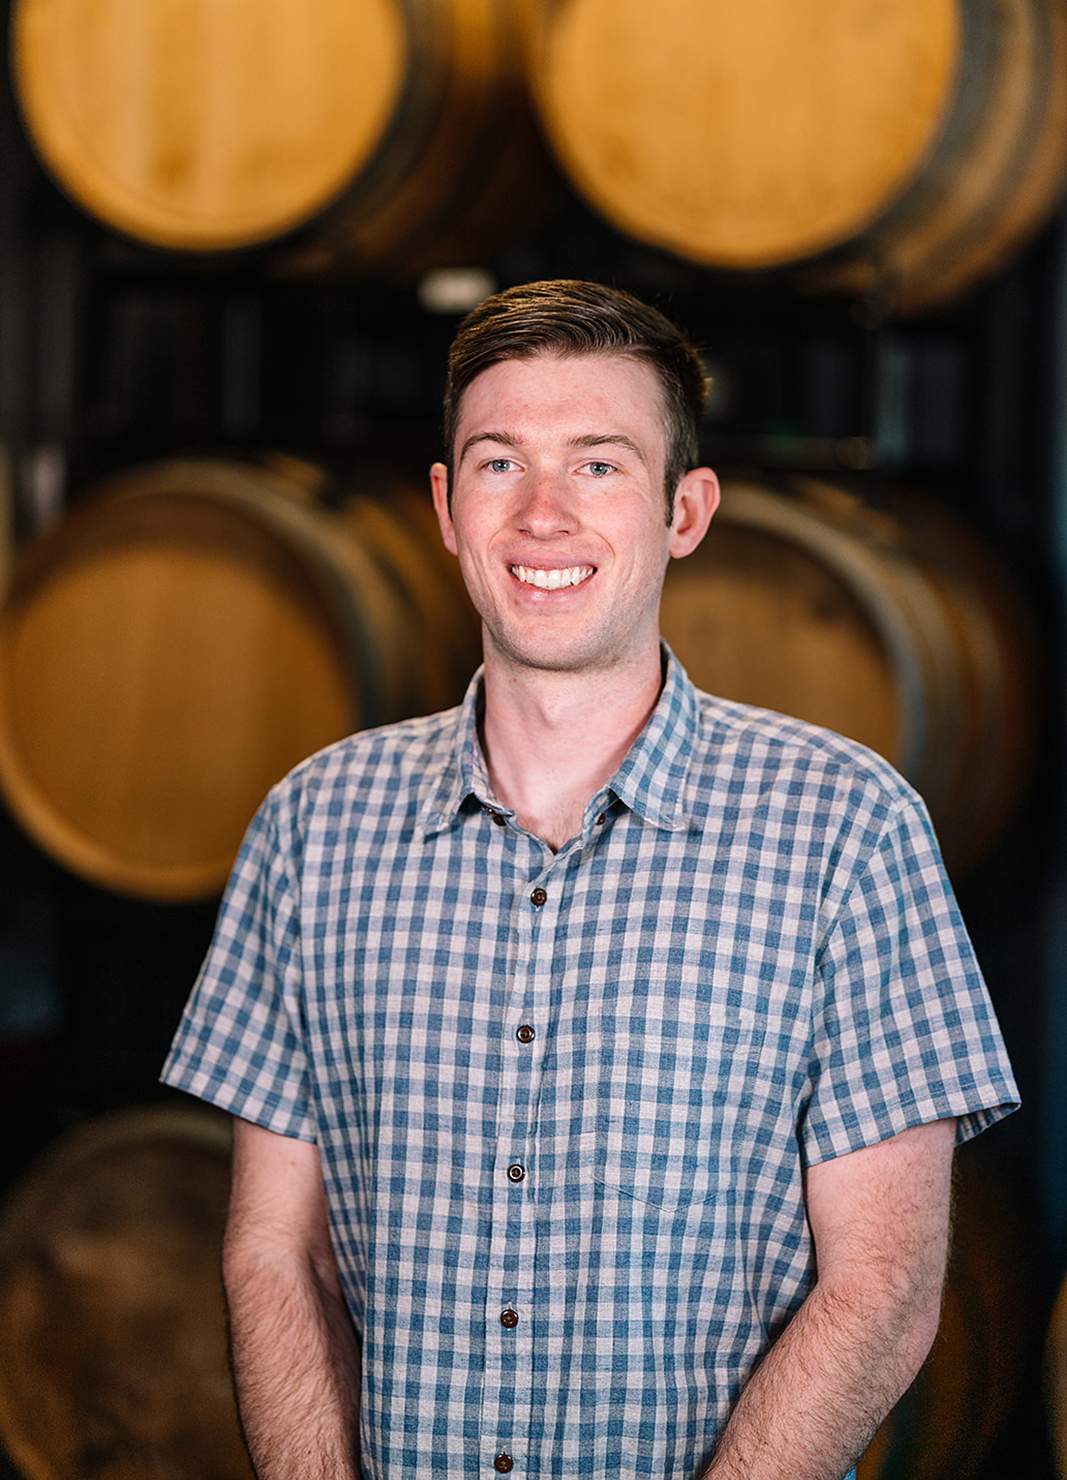 Carboy Production Specialist, Nic Carter, standing in front of wine barrels